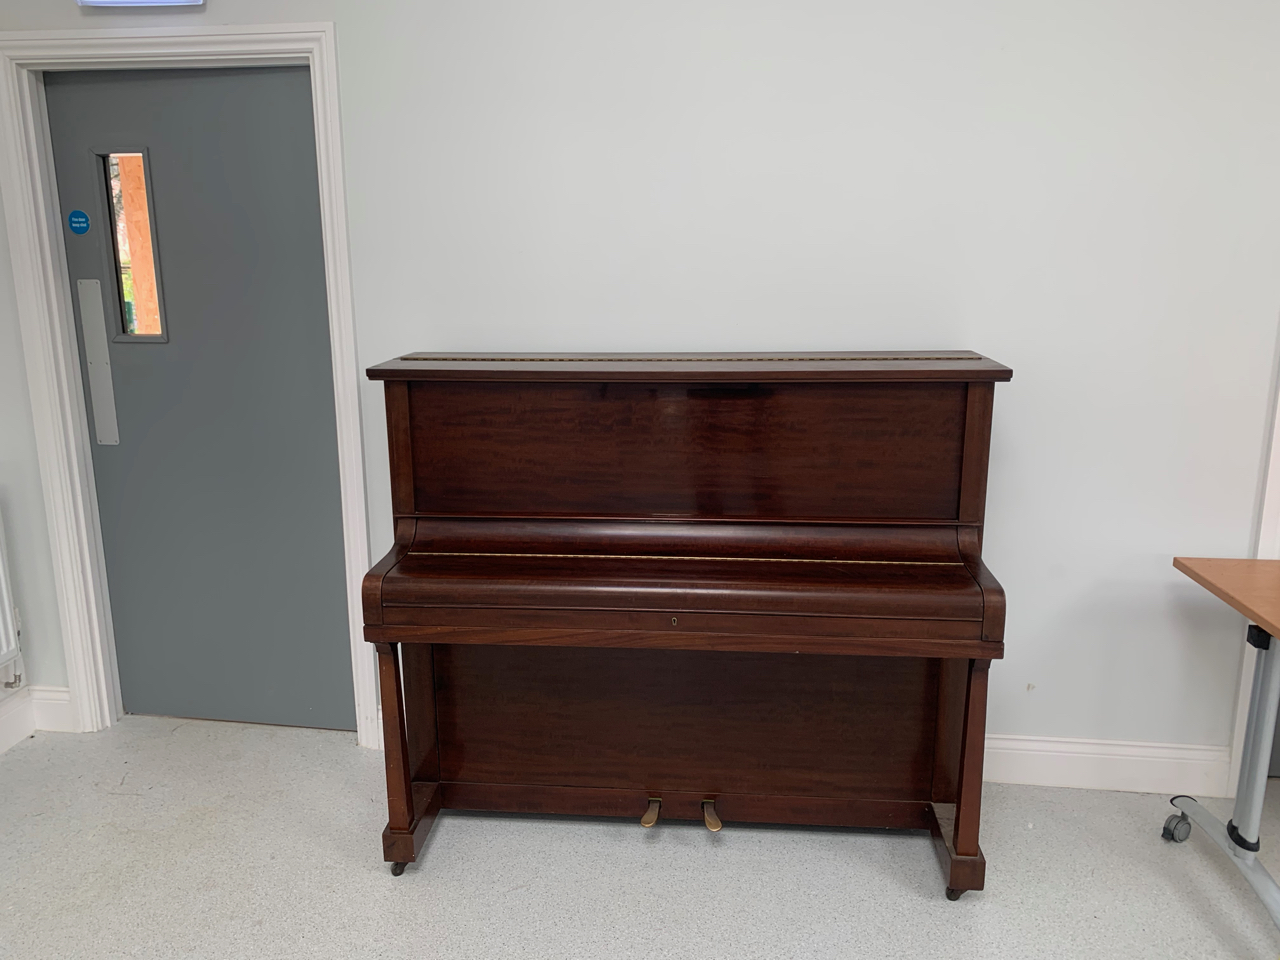 An upright piano